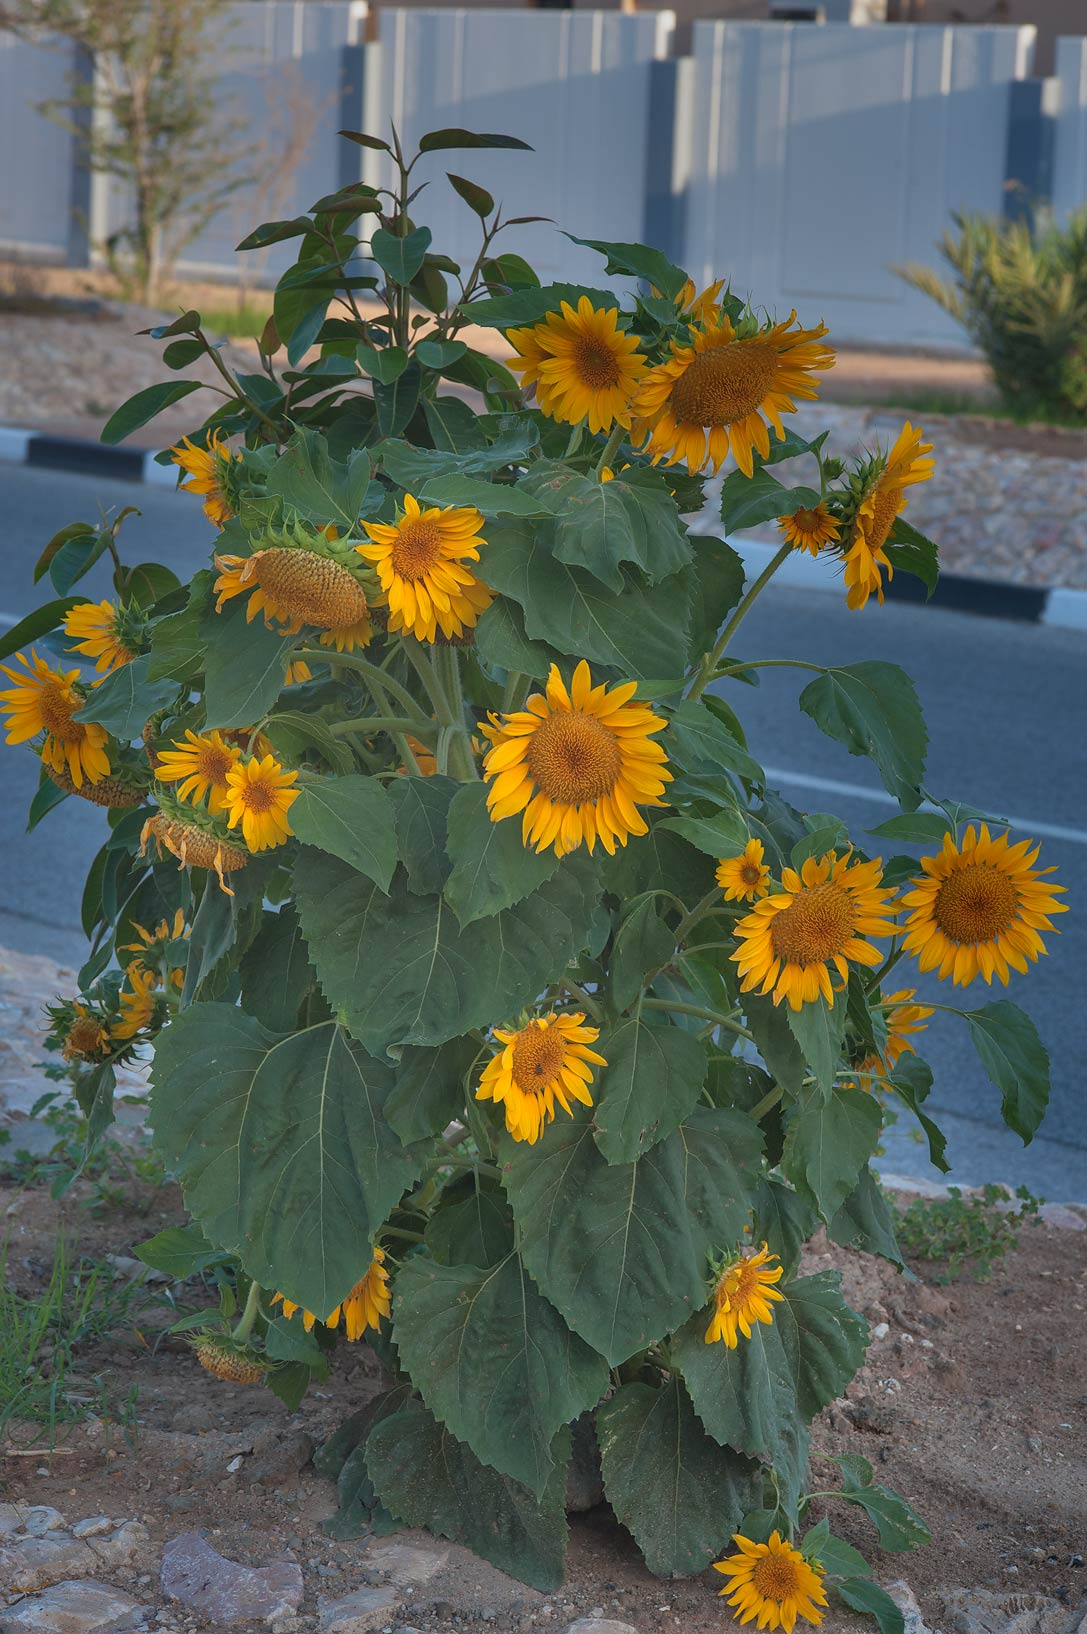 Common sunflower (Helianthus annuus) in Onaiza area. Doha, Qatar